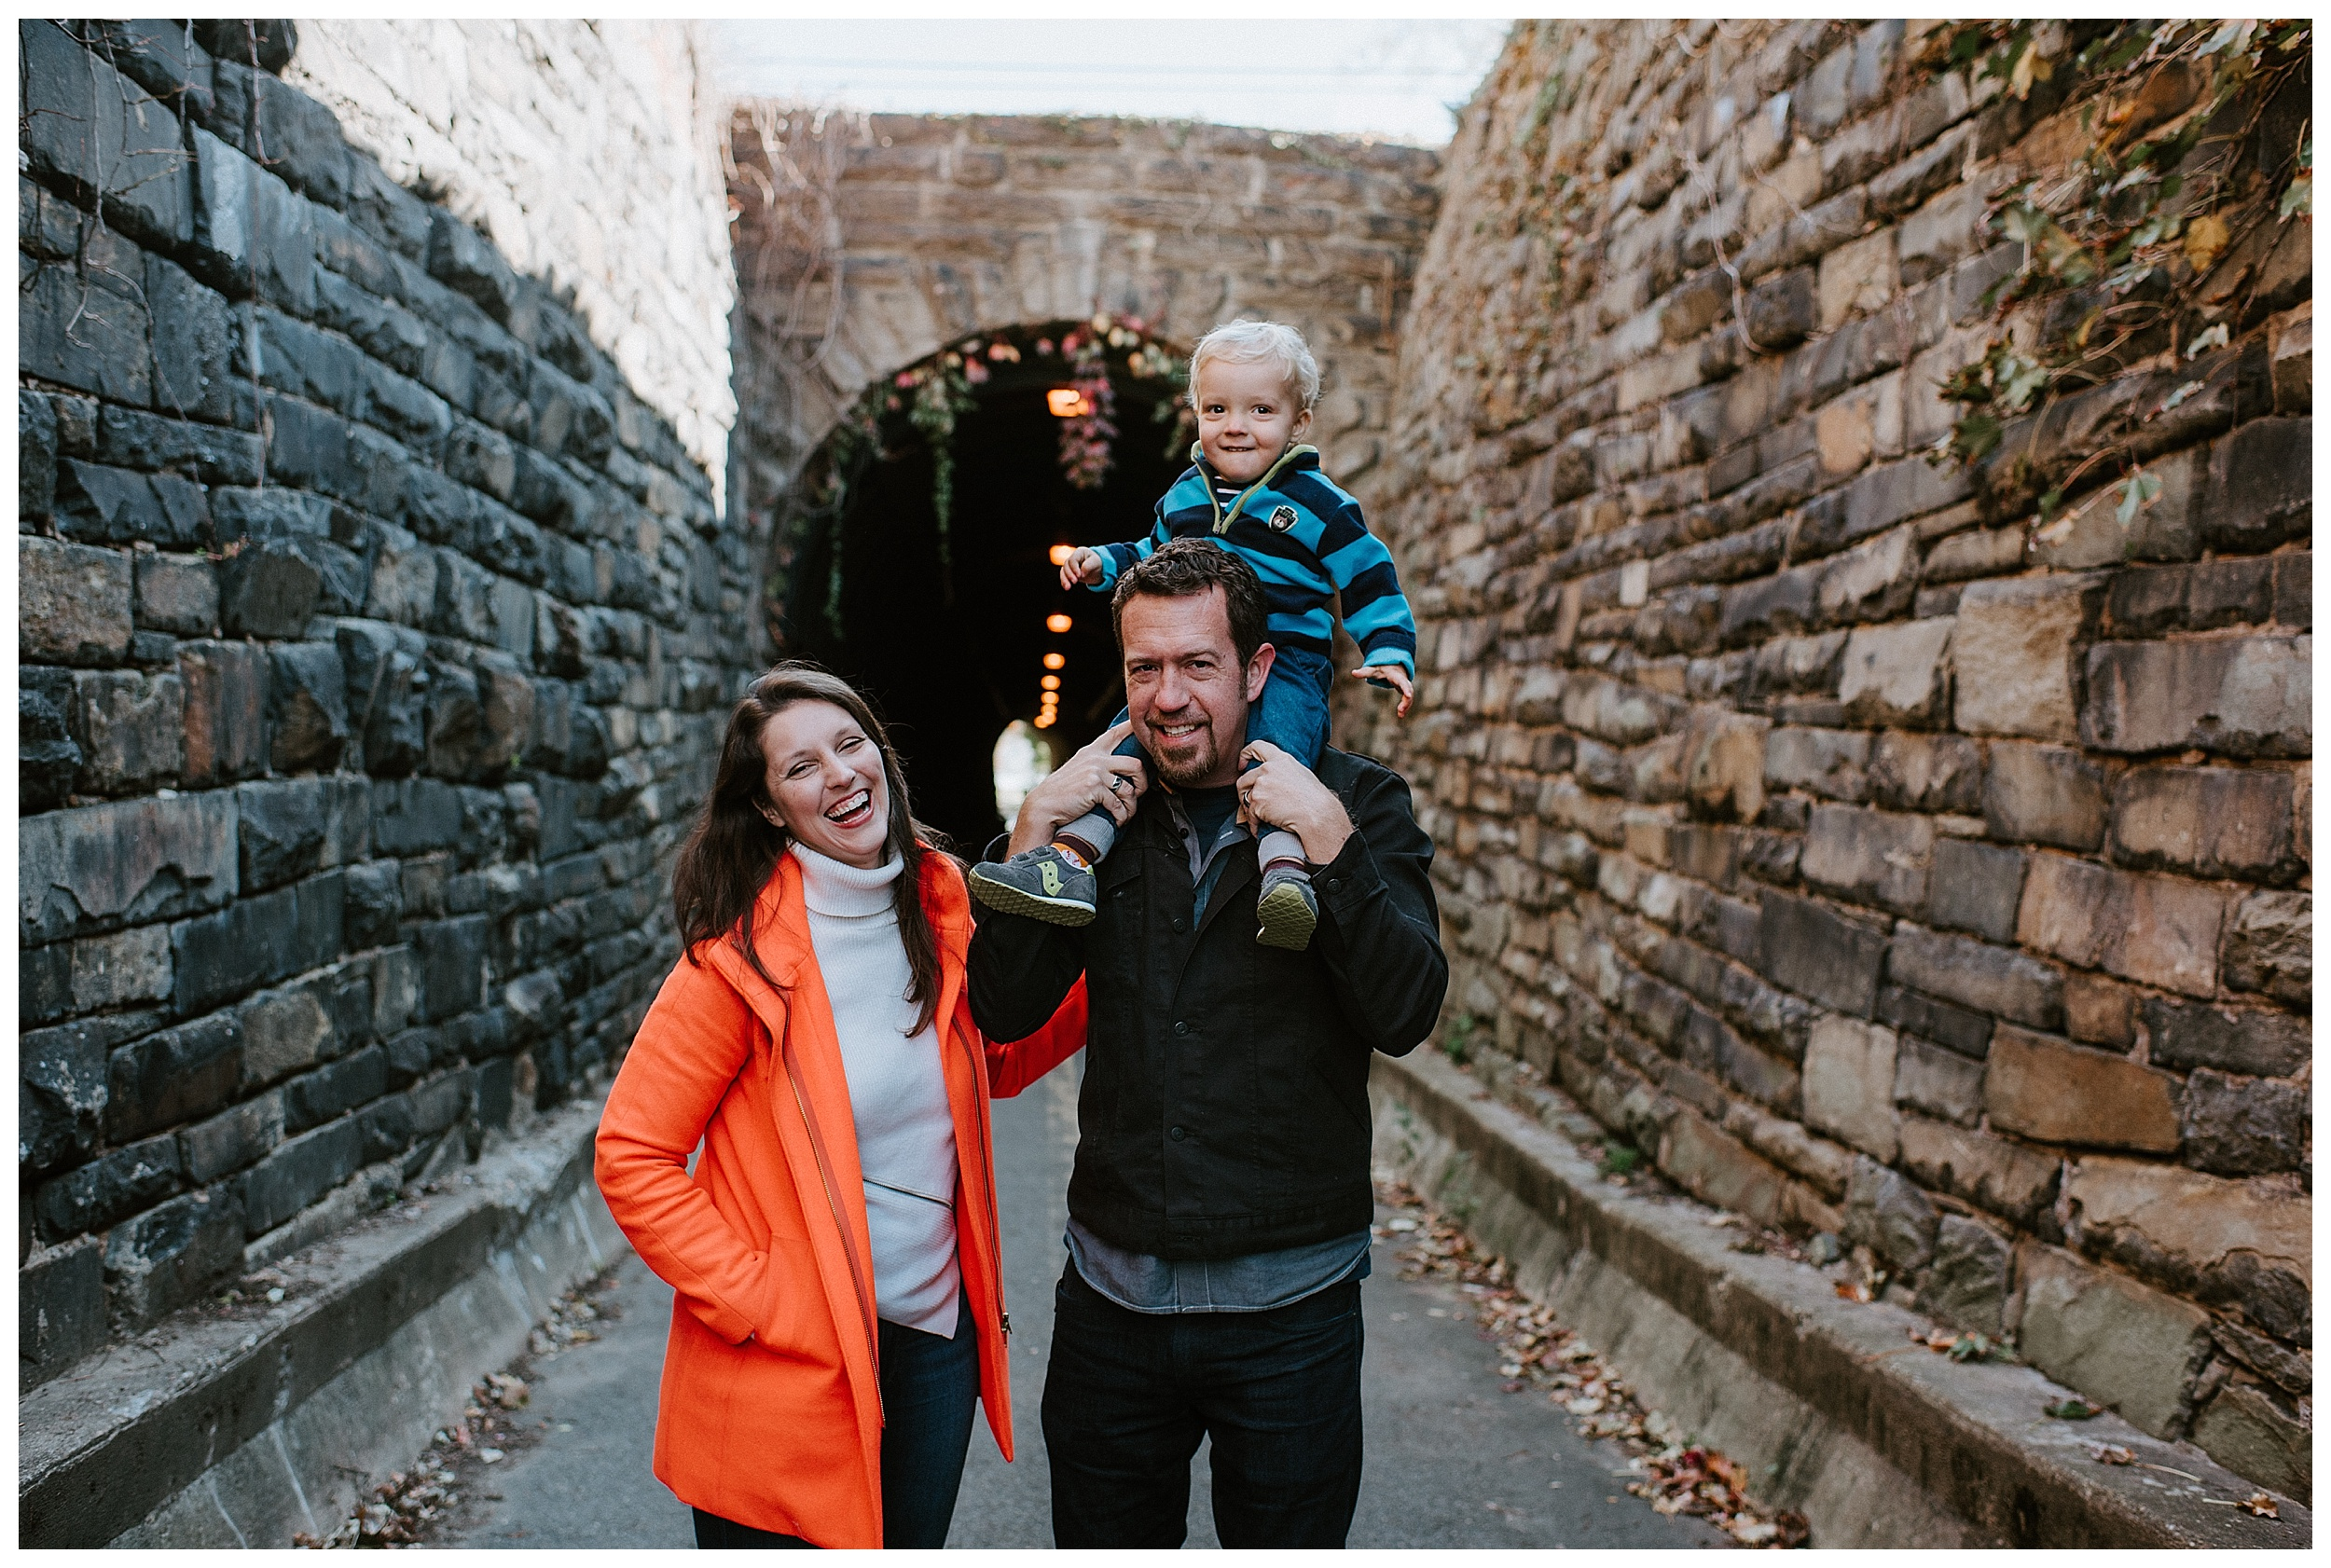 DC-VIRGINIA-FAMILY-PHOTOGRAPHER-CANDID-NATURAL-LIFESTYLE-MEGAN-GRAHAM-PHOTOGRAPHY-ALEXANDRIA-WILKES-TUNNEL_0133.jpg